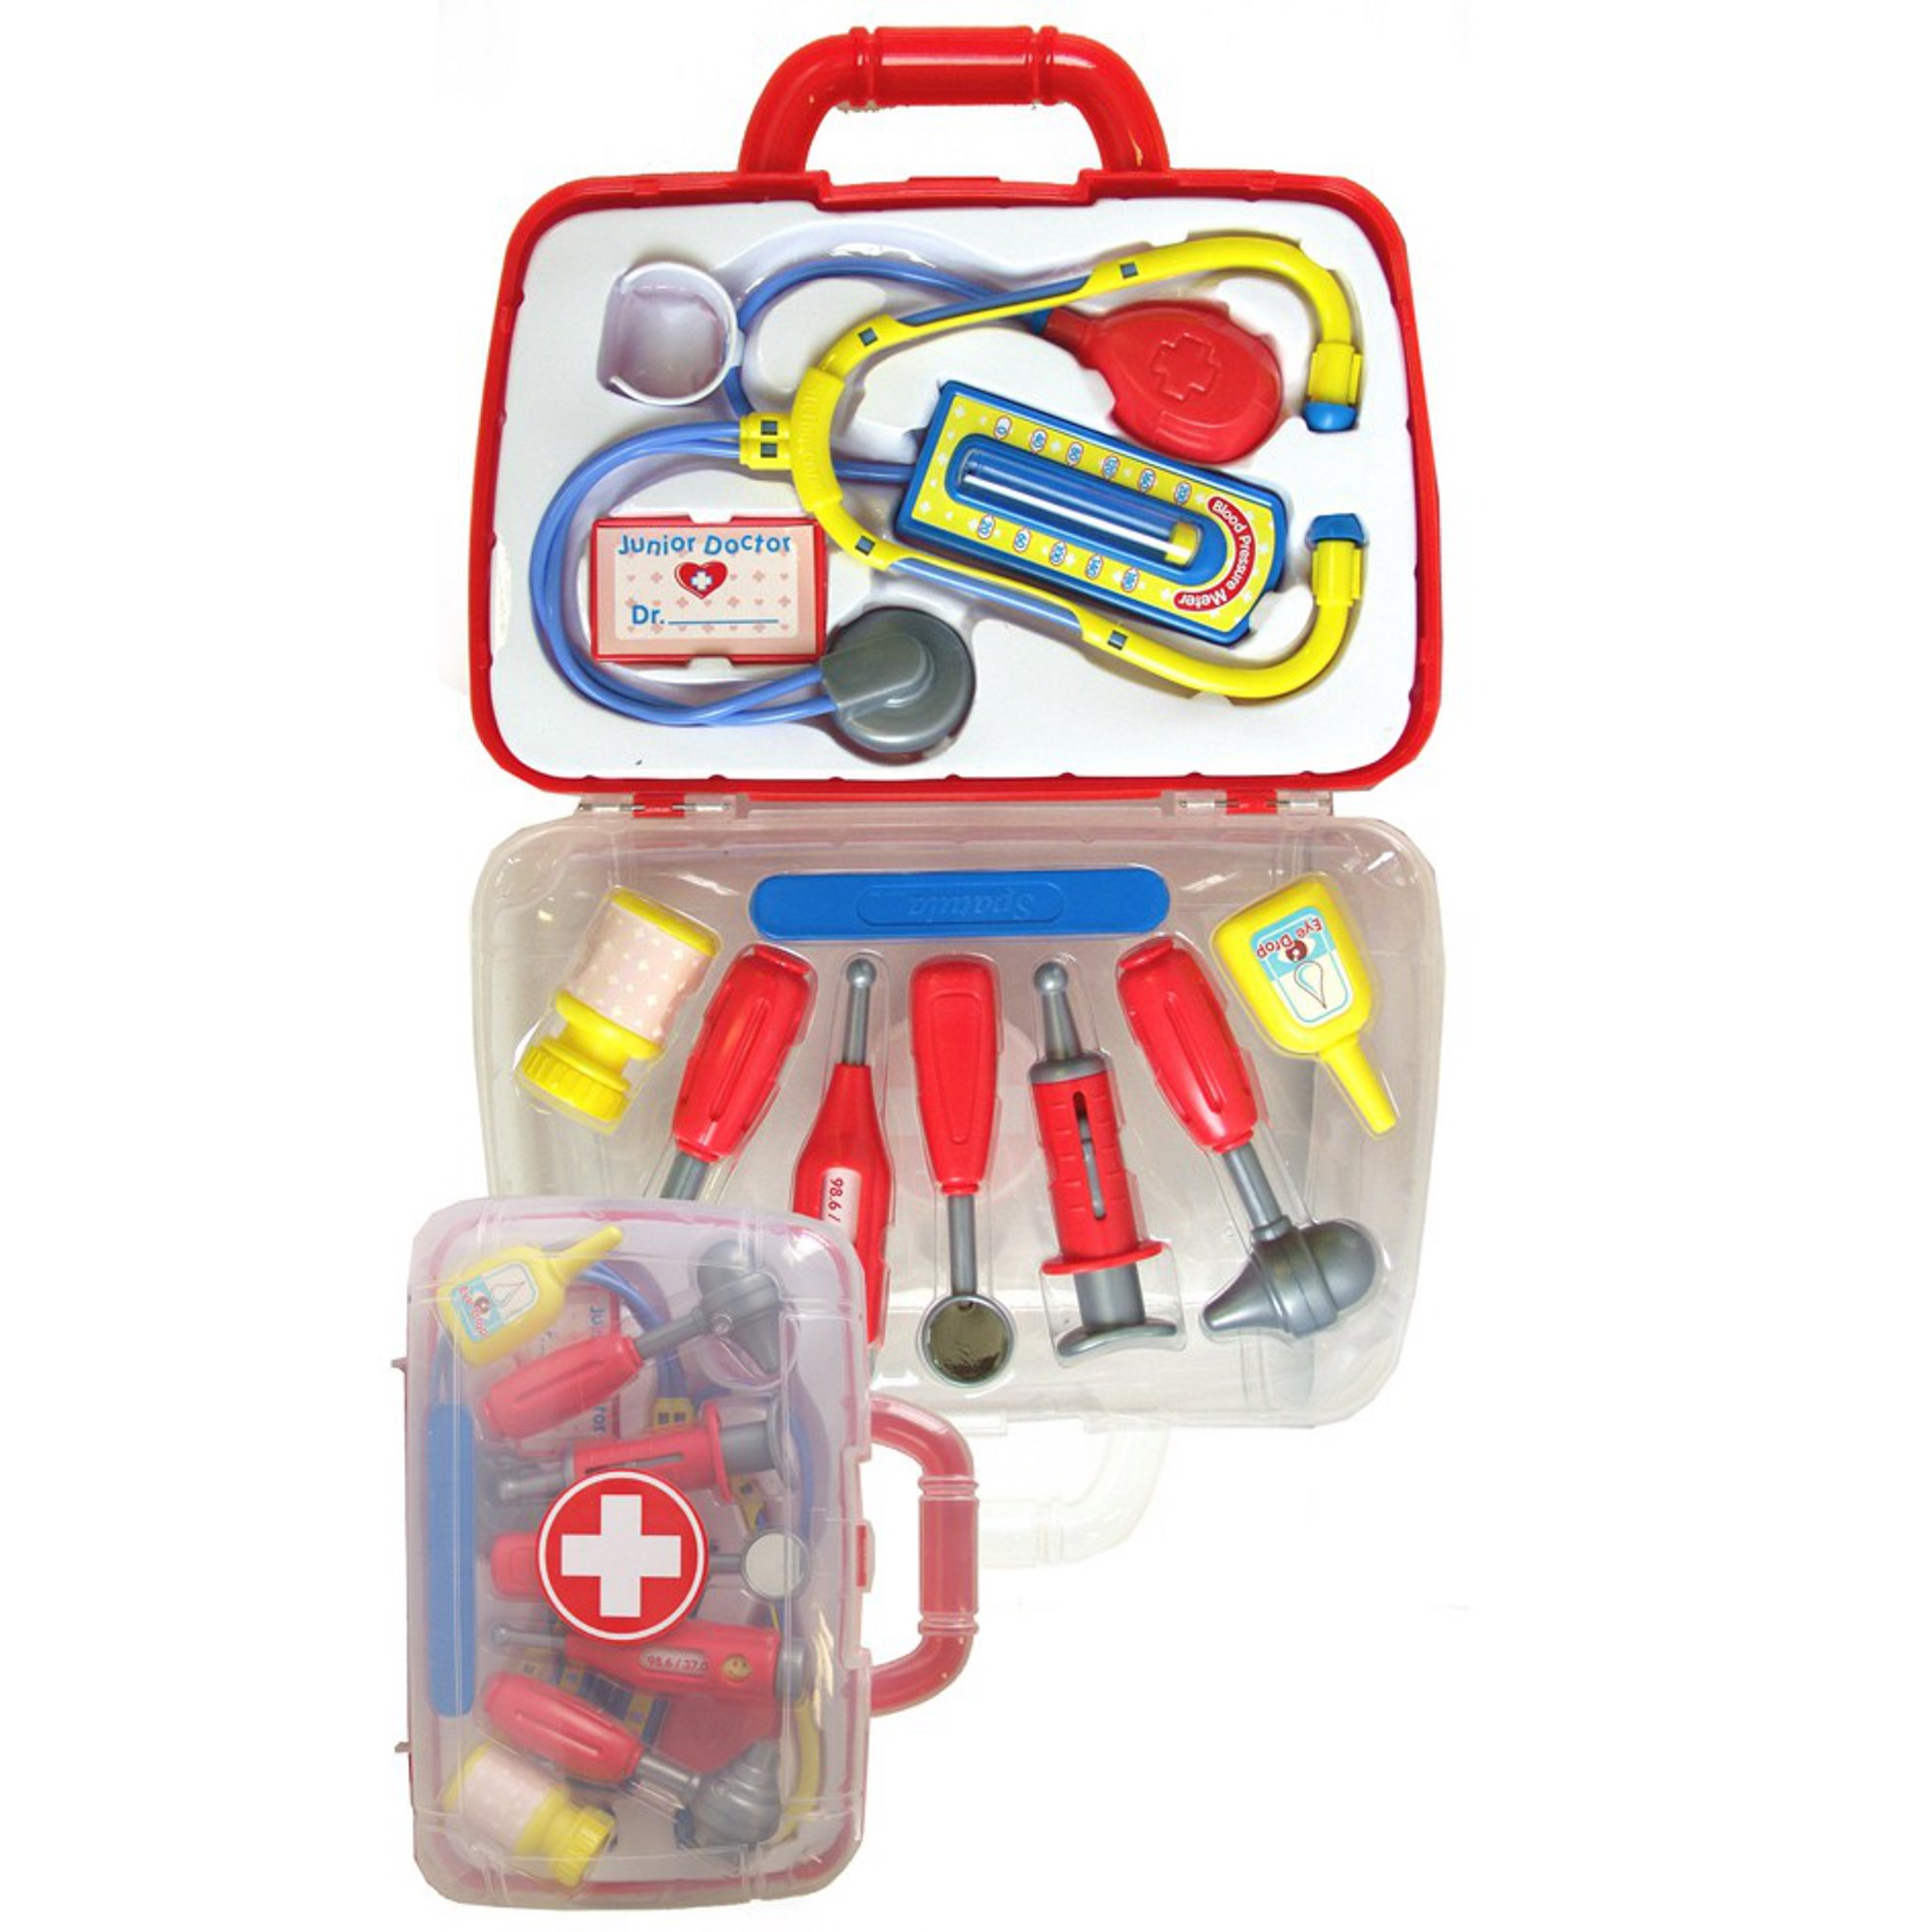 Doctors Check Up Kit